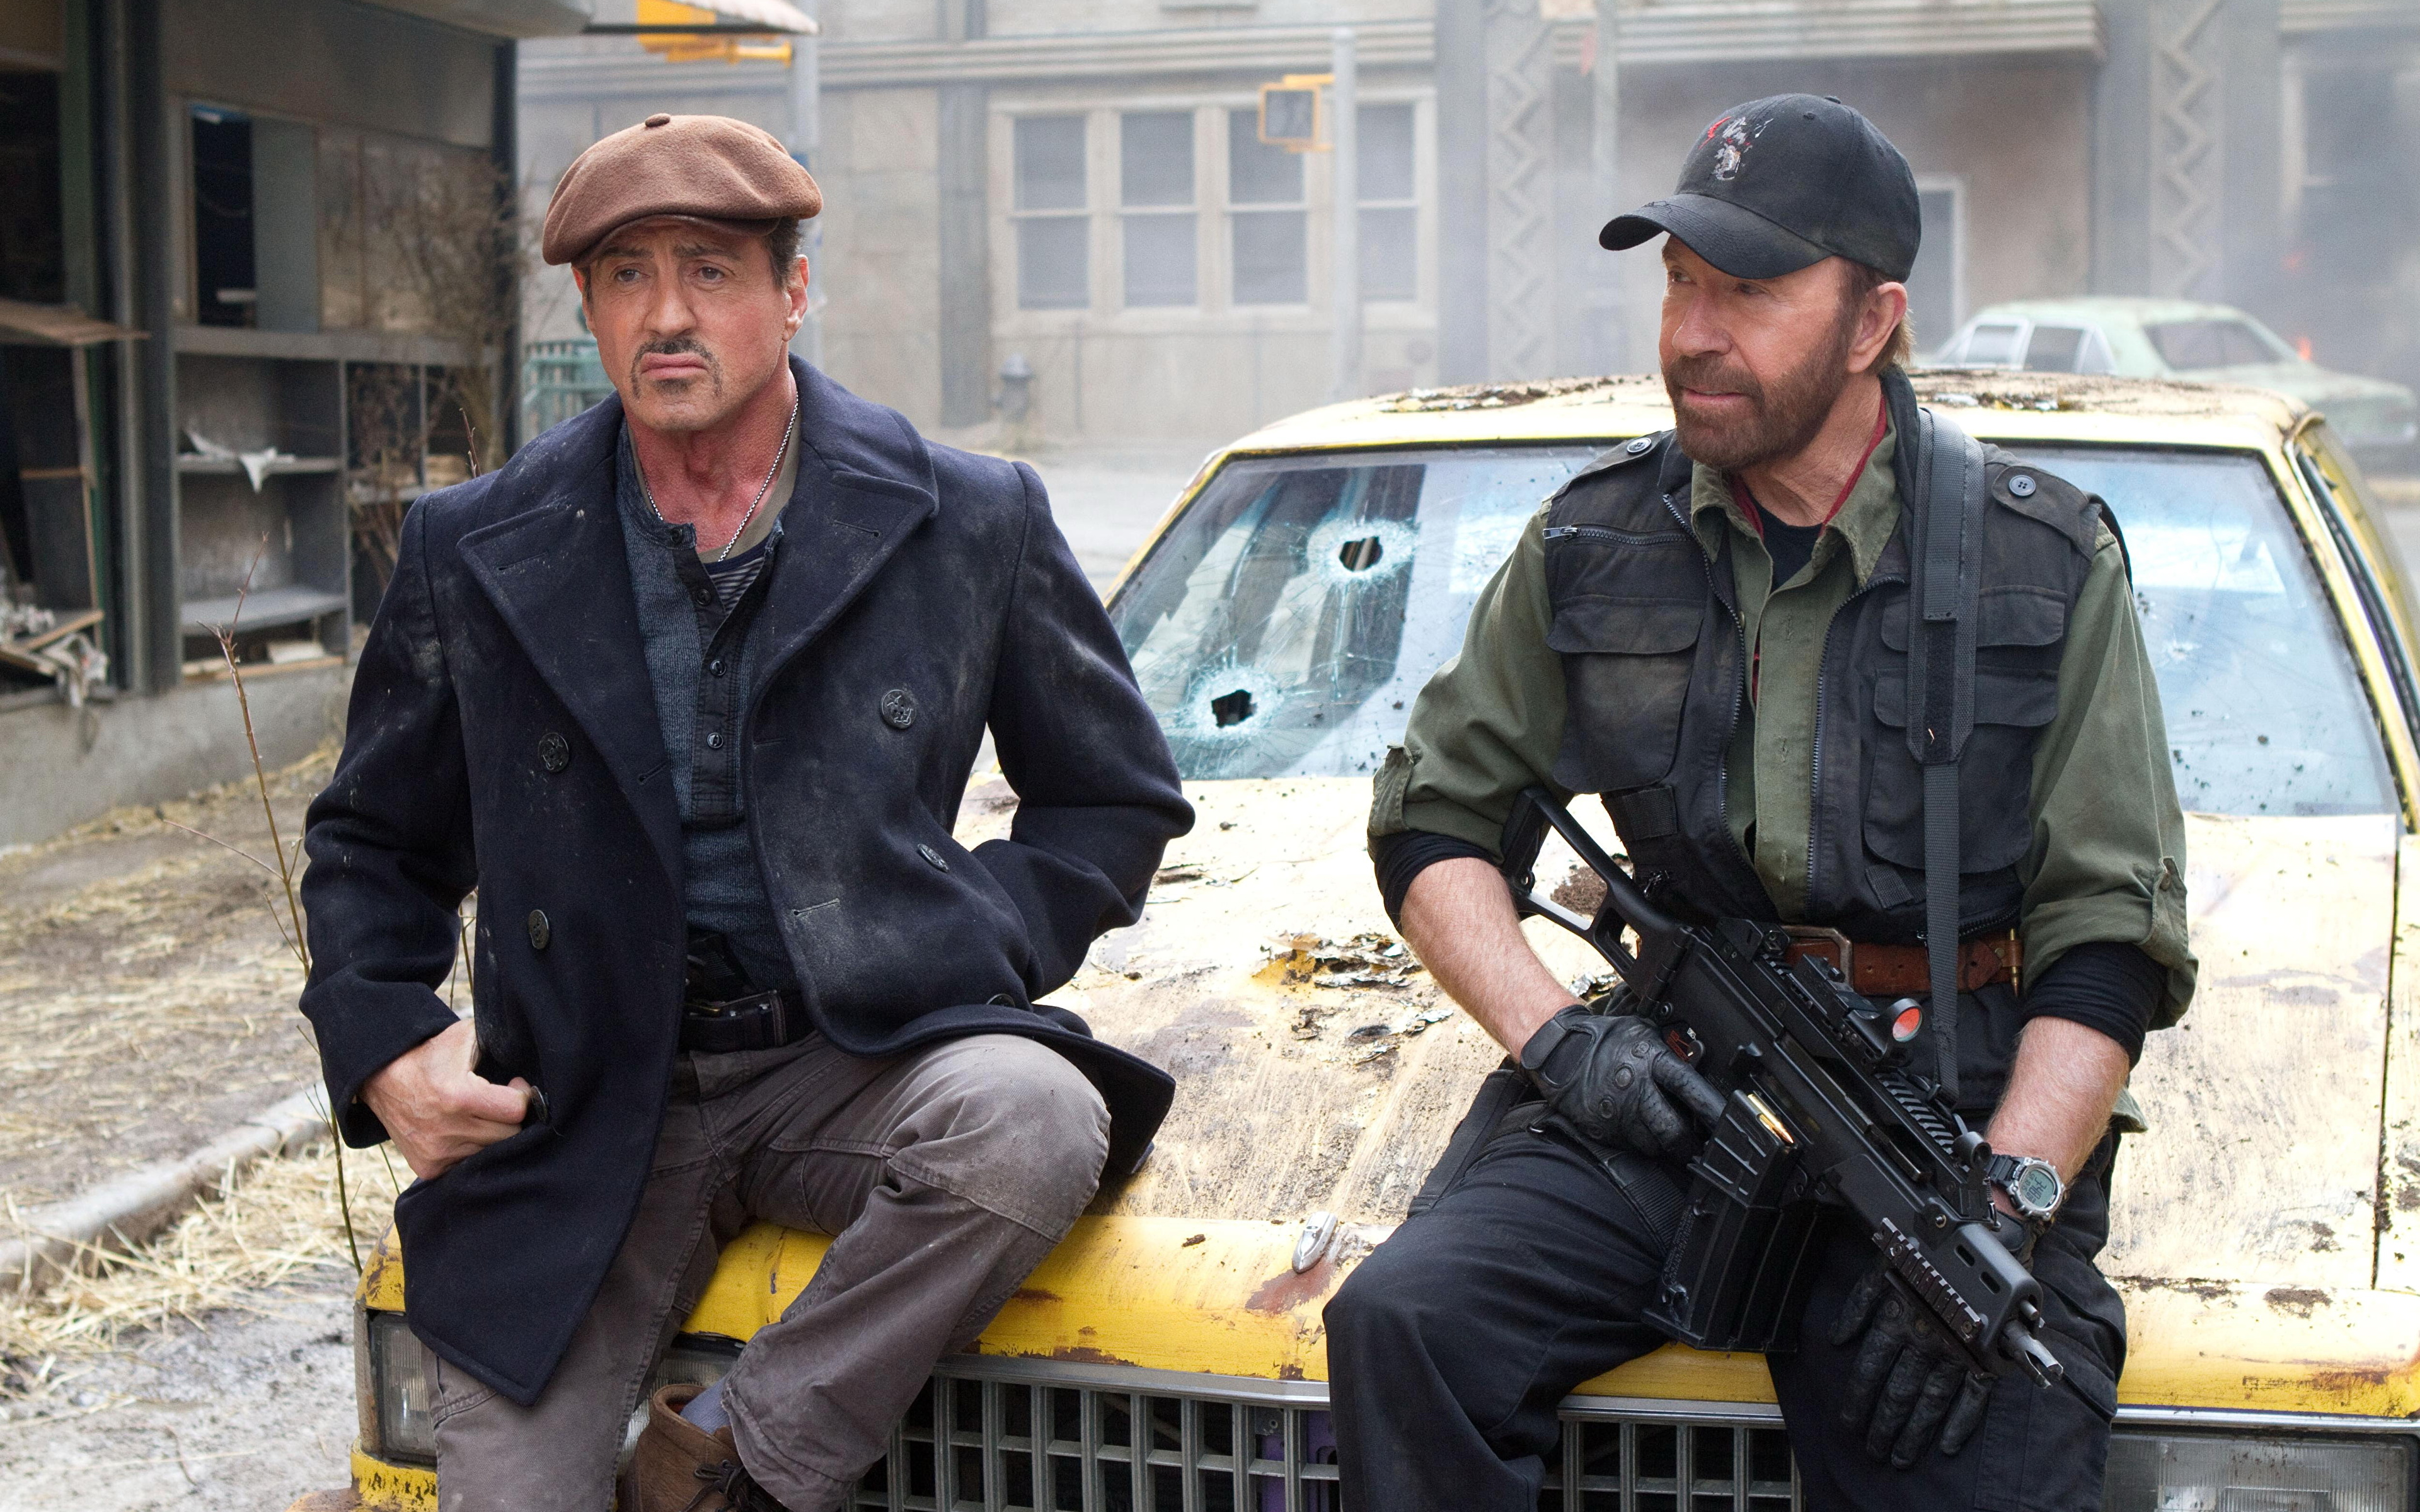 Picture The Expendables 2010 Chuck Norris Sylvester Stallone film 3840x2400 Movies